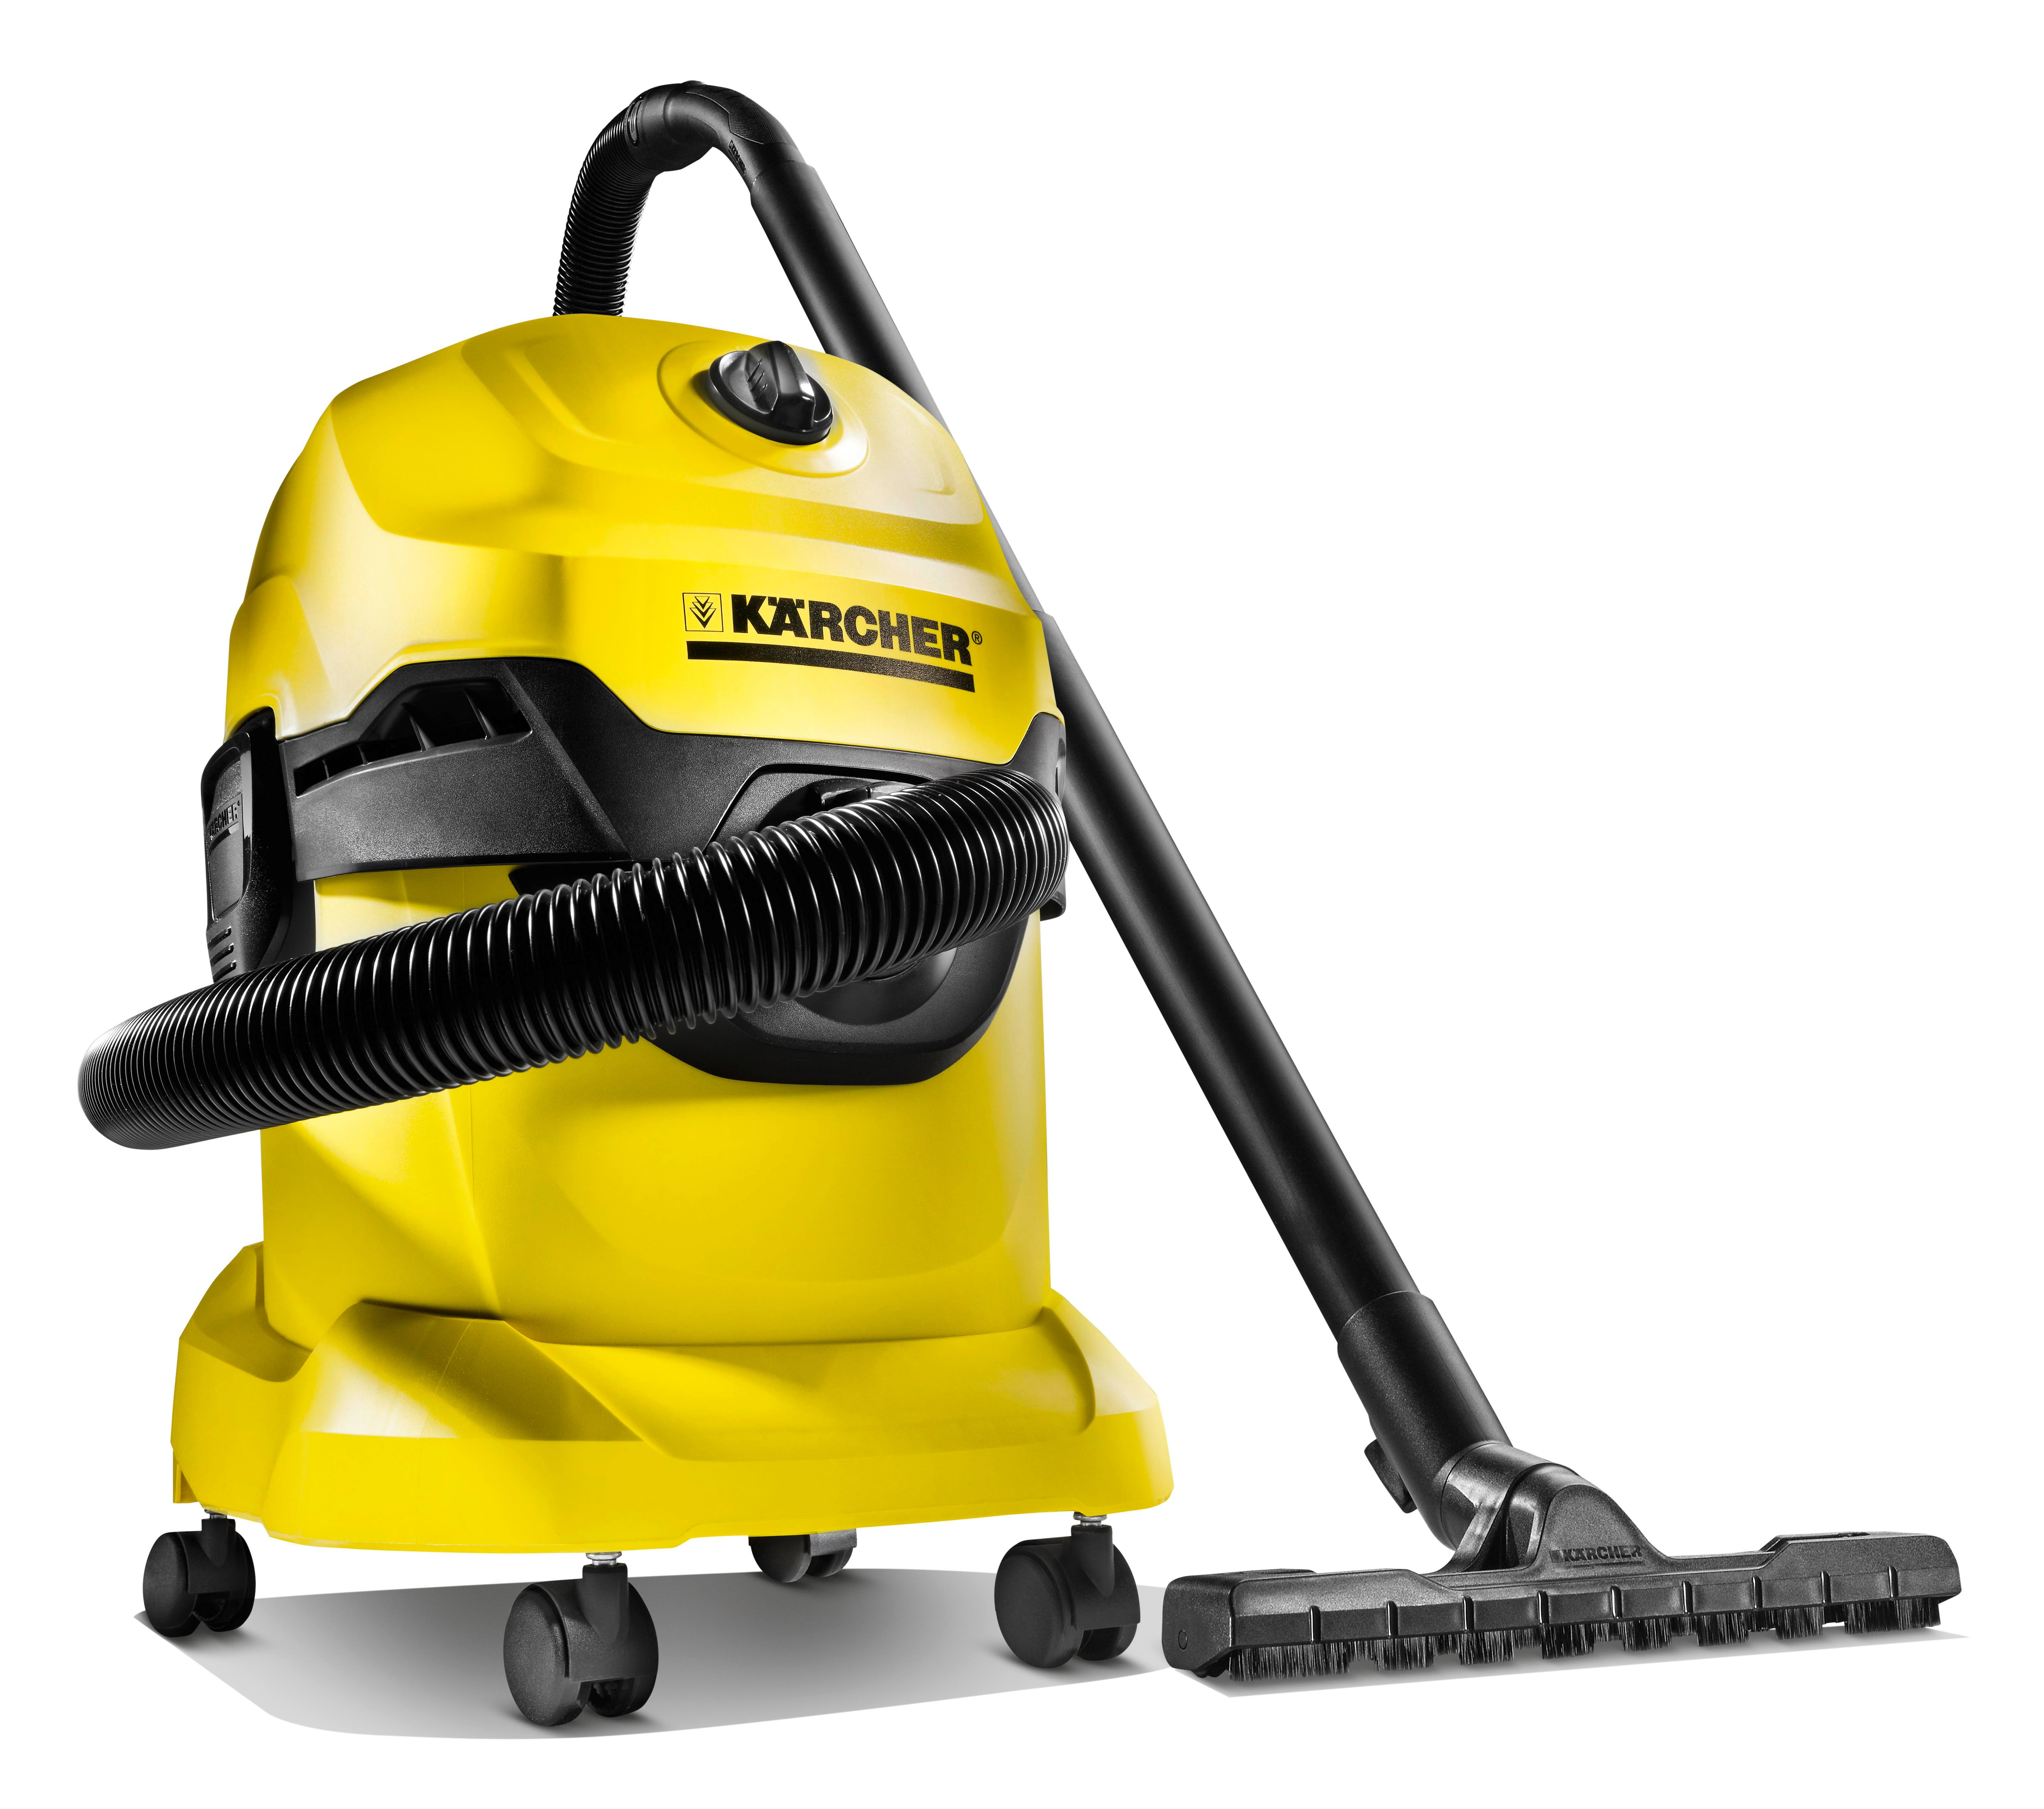 Karcher Wd4 Multi Purpose Wet Dry Vacuum Cleaner With